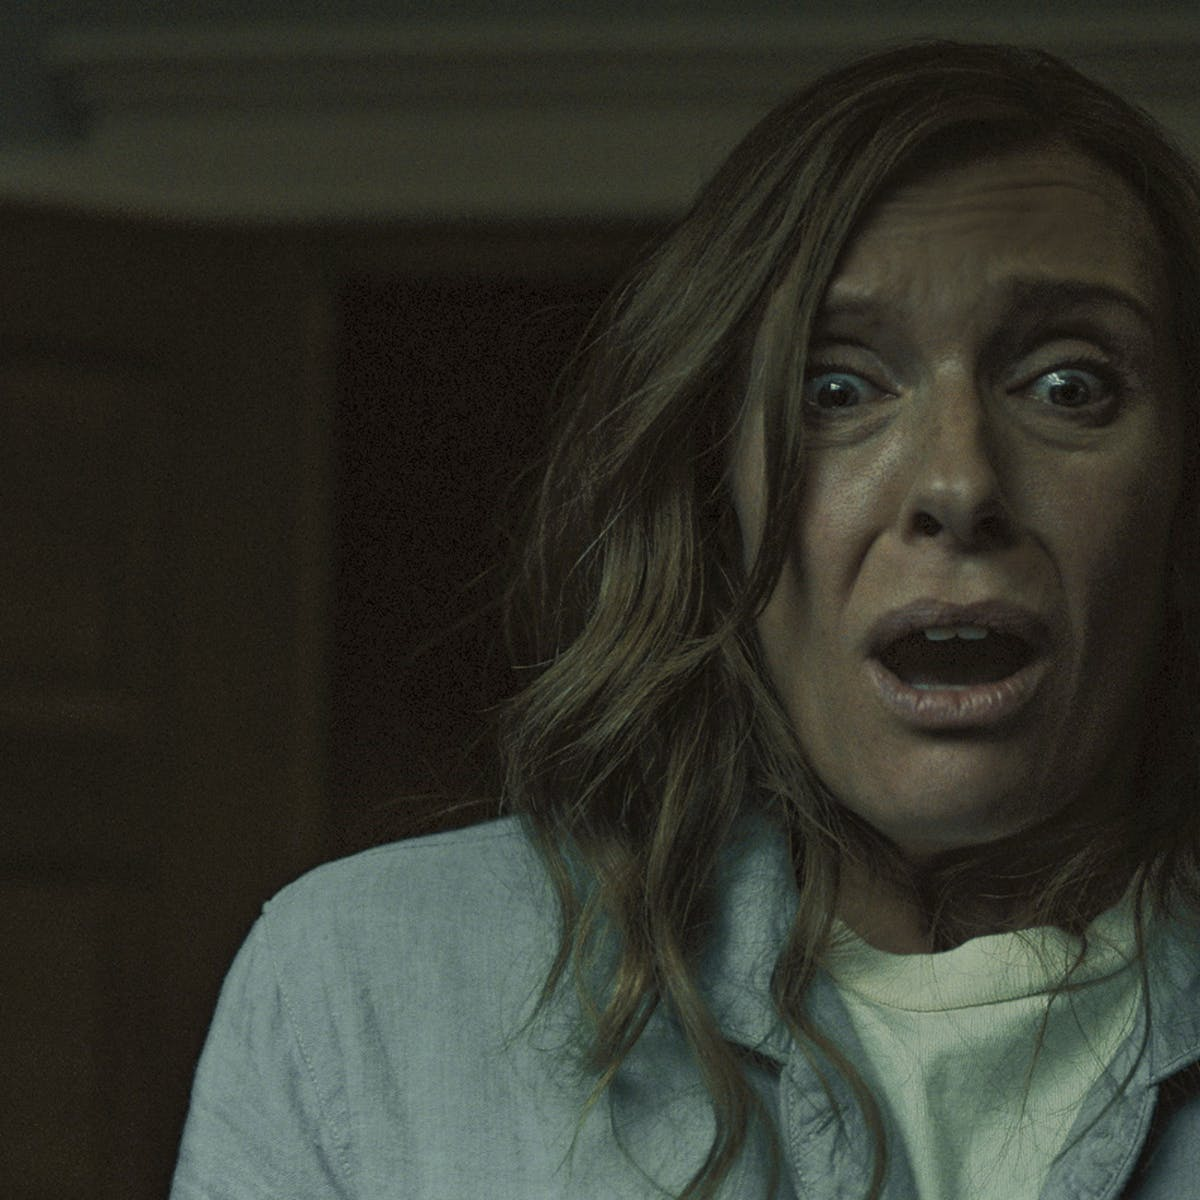 How Hereditary Nailed That Shocking Nerve Wracking Driving